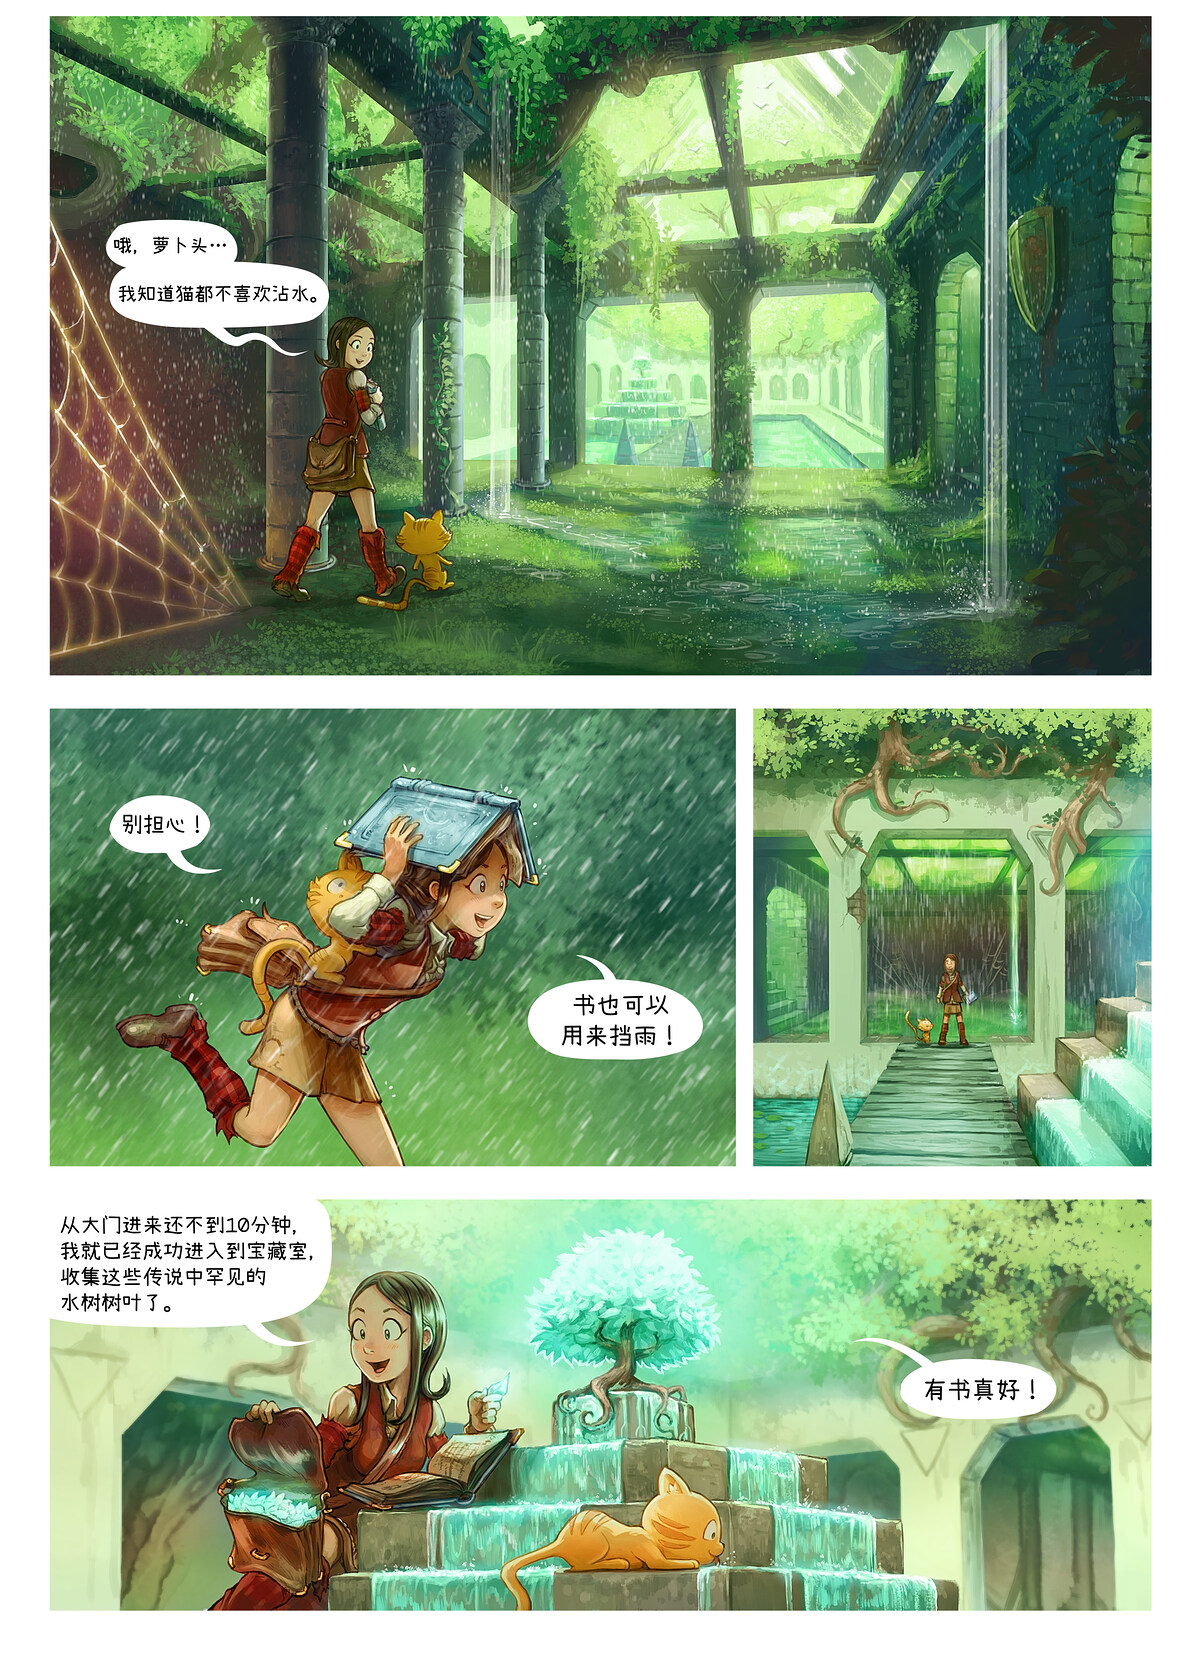 A webcomic page of Pepper&Carrot, 漫画全集 26 [cn], 页面 3